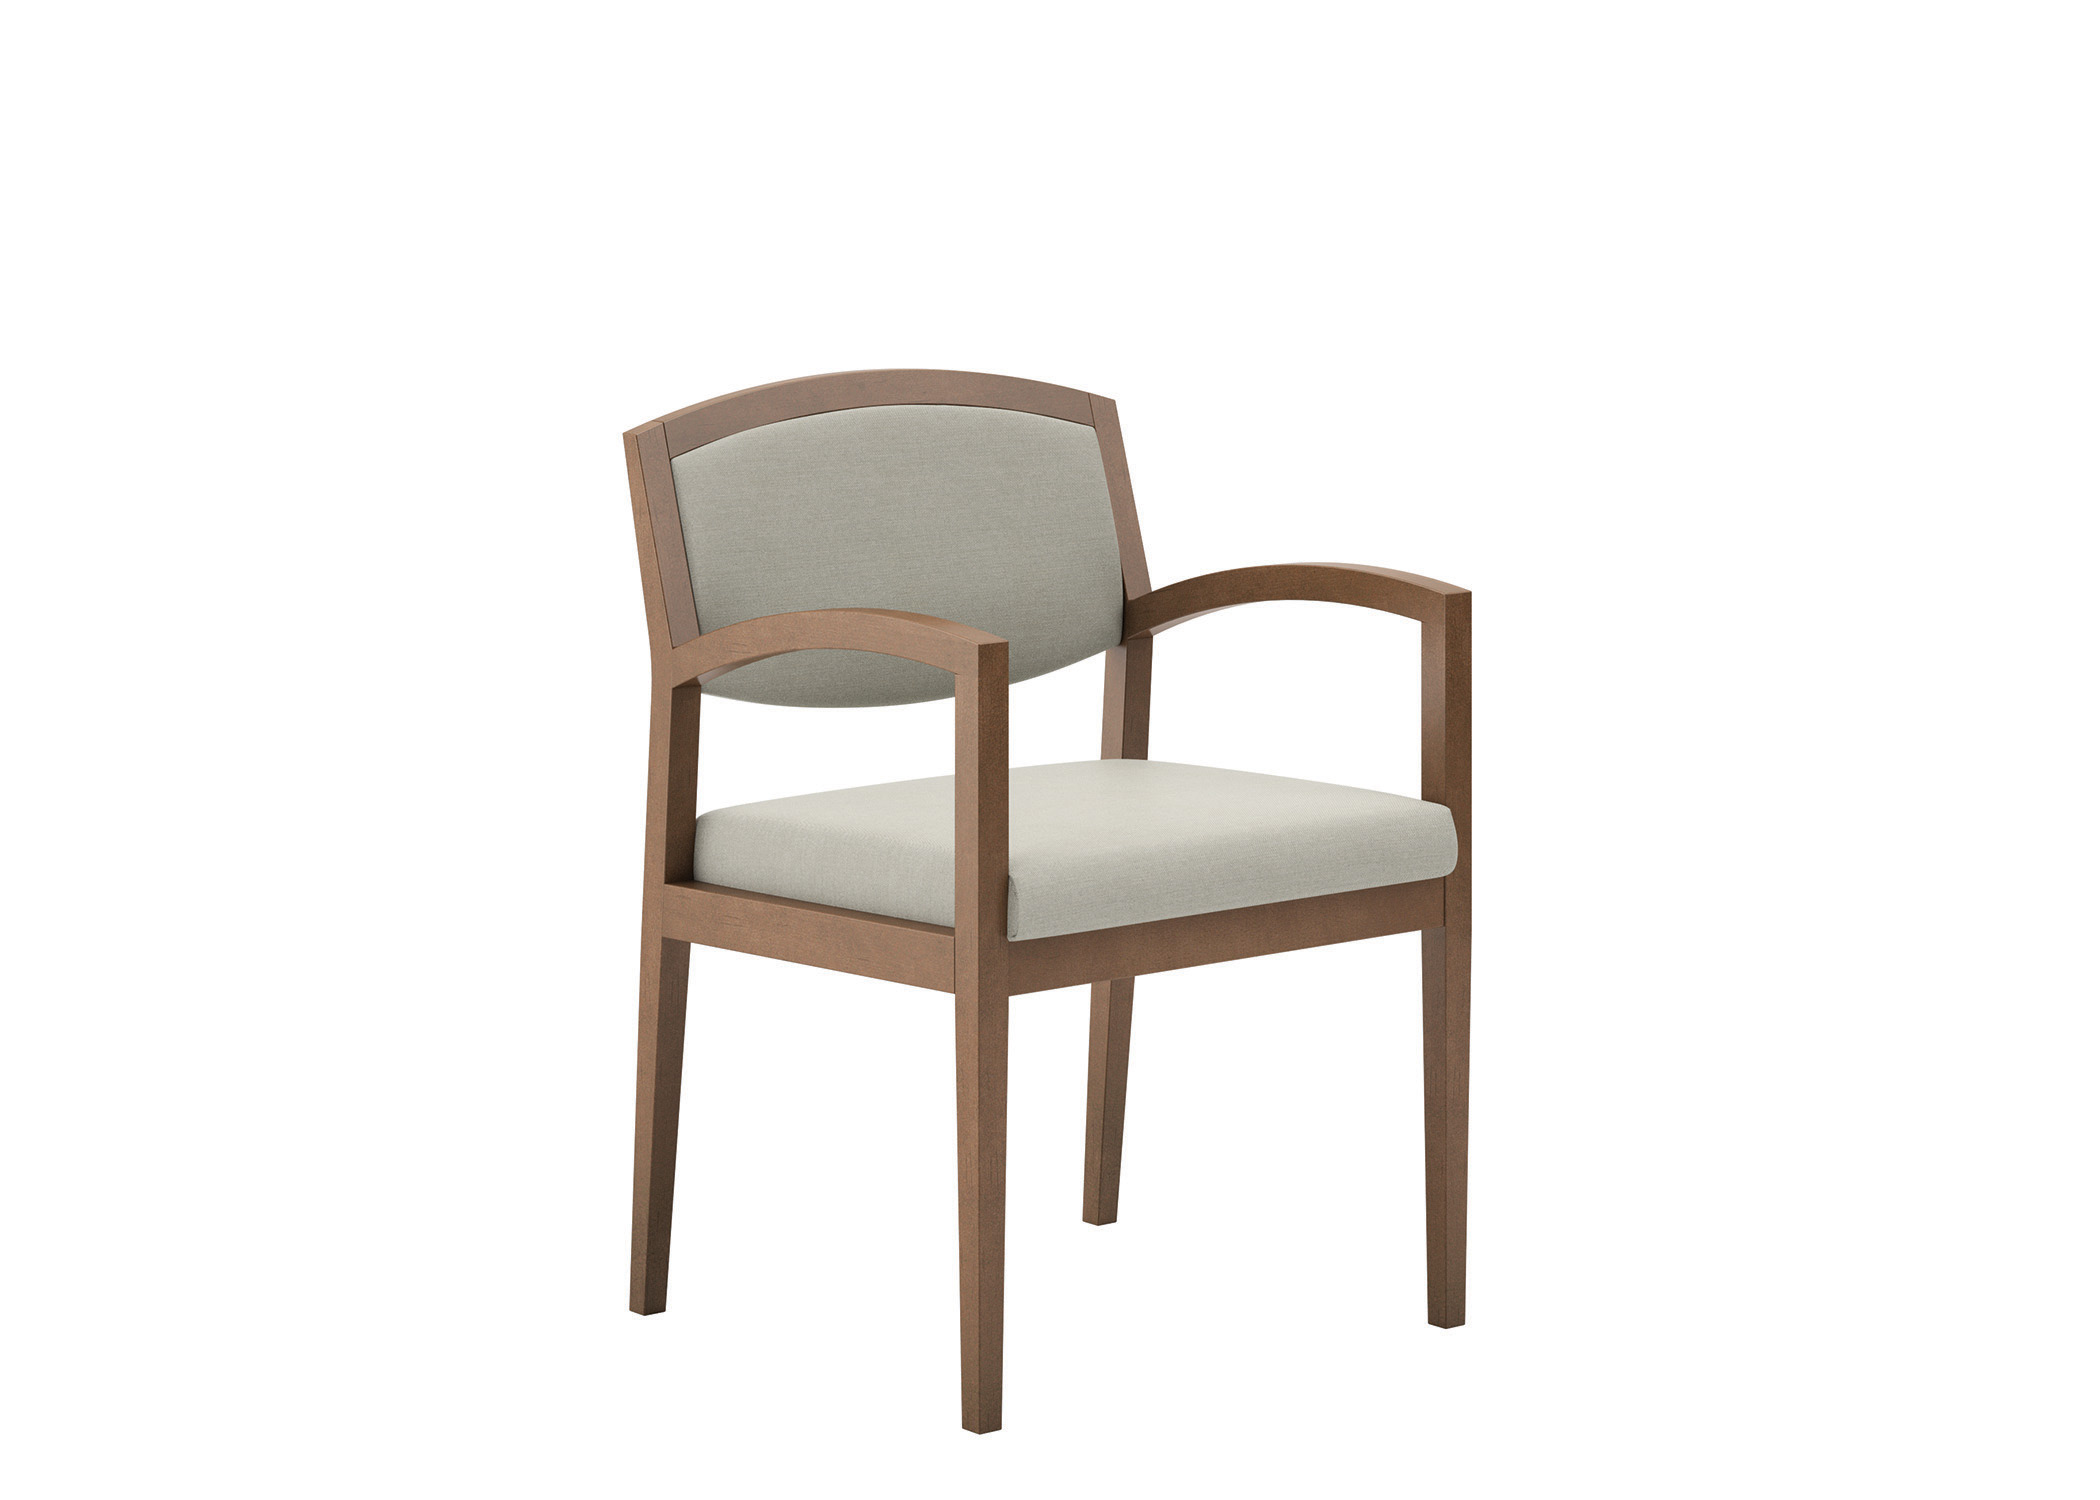 Seating National Office Furniture National Office Furniture